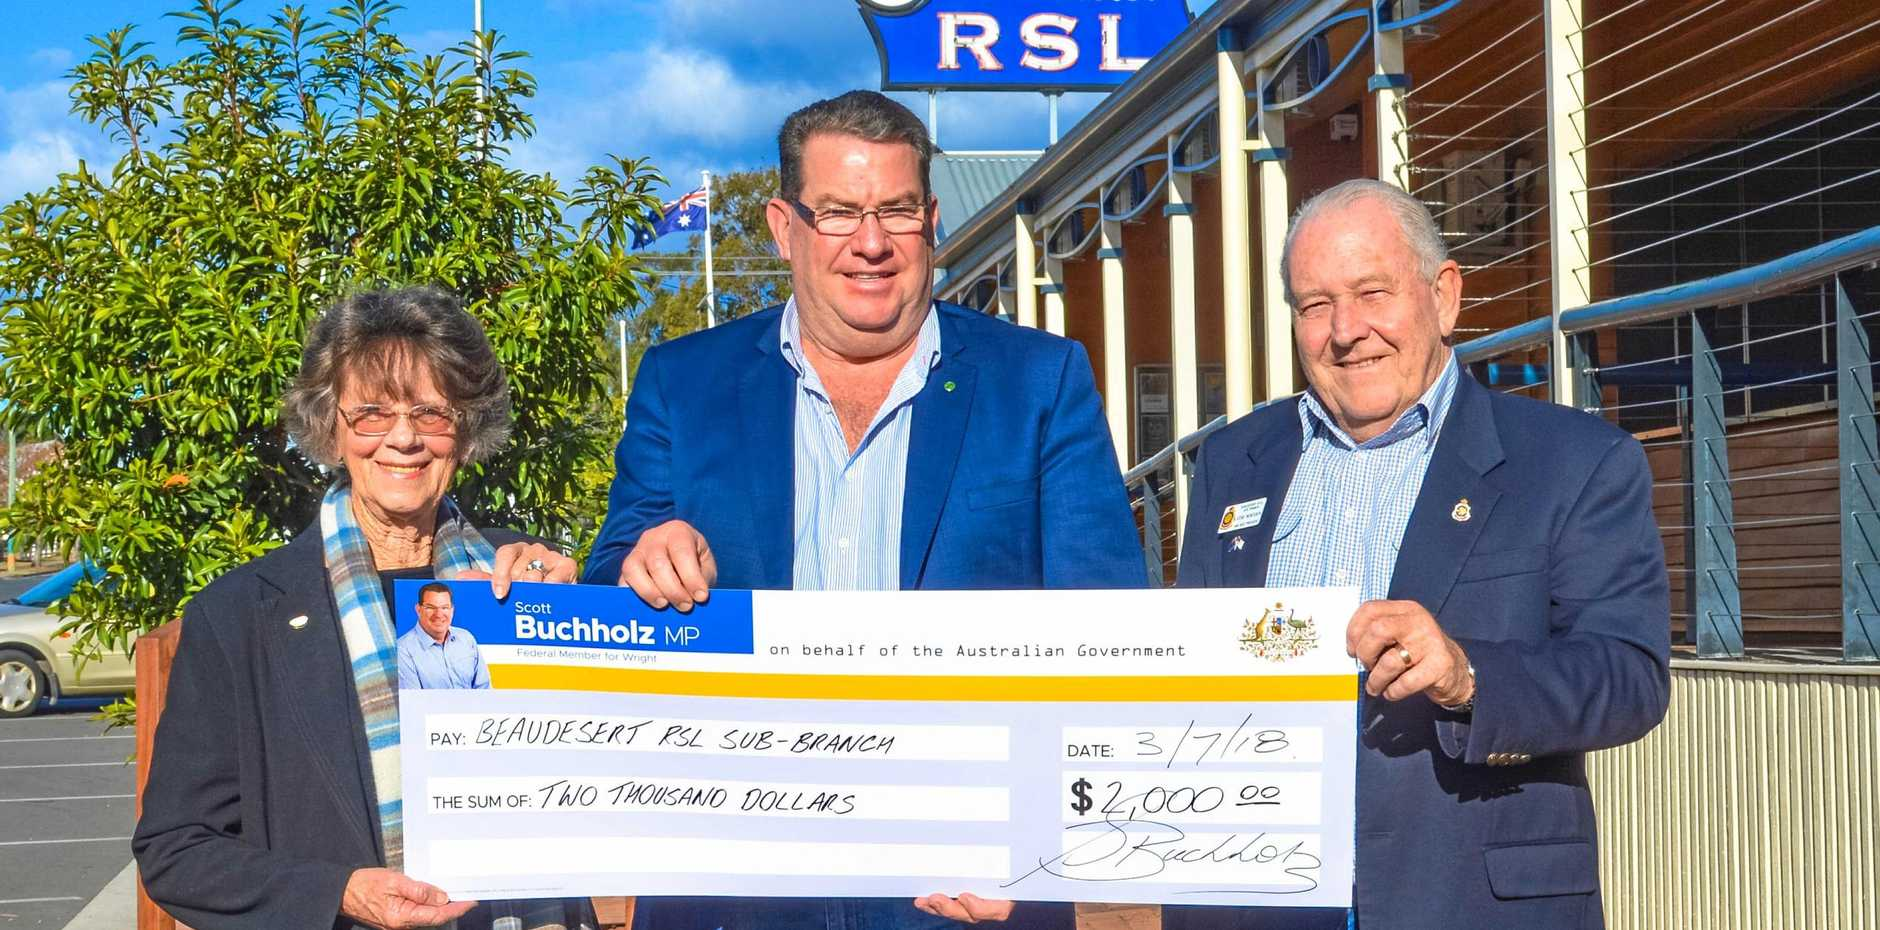 The Federal Government has given a $2000 grant to the Beaudesert RSL Sub Branch. Pictured are Carol Castles, Scott Buchholz and Steve Monteath.